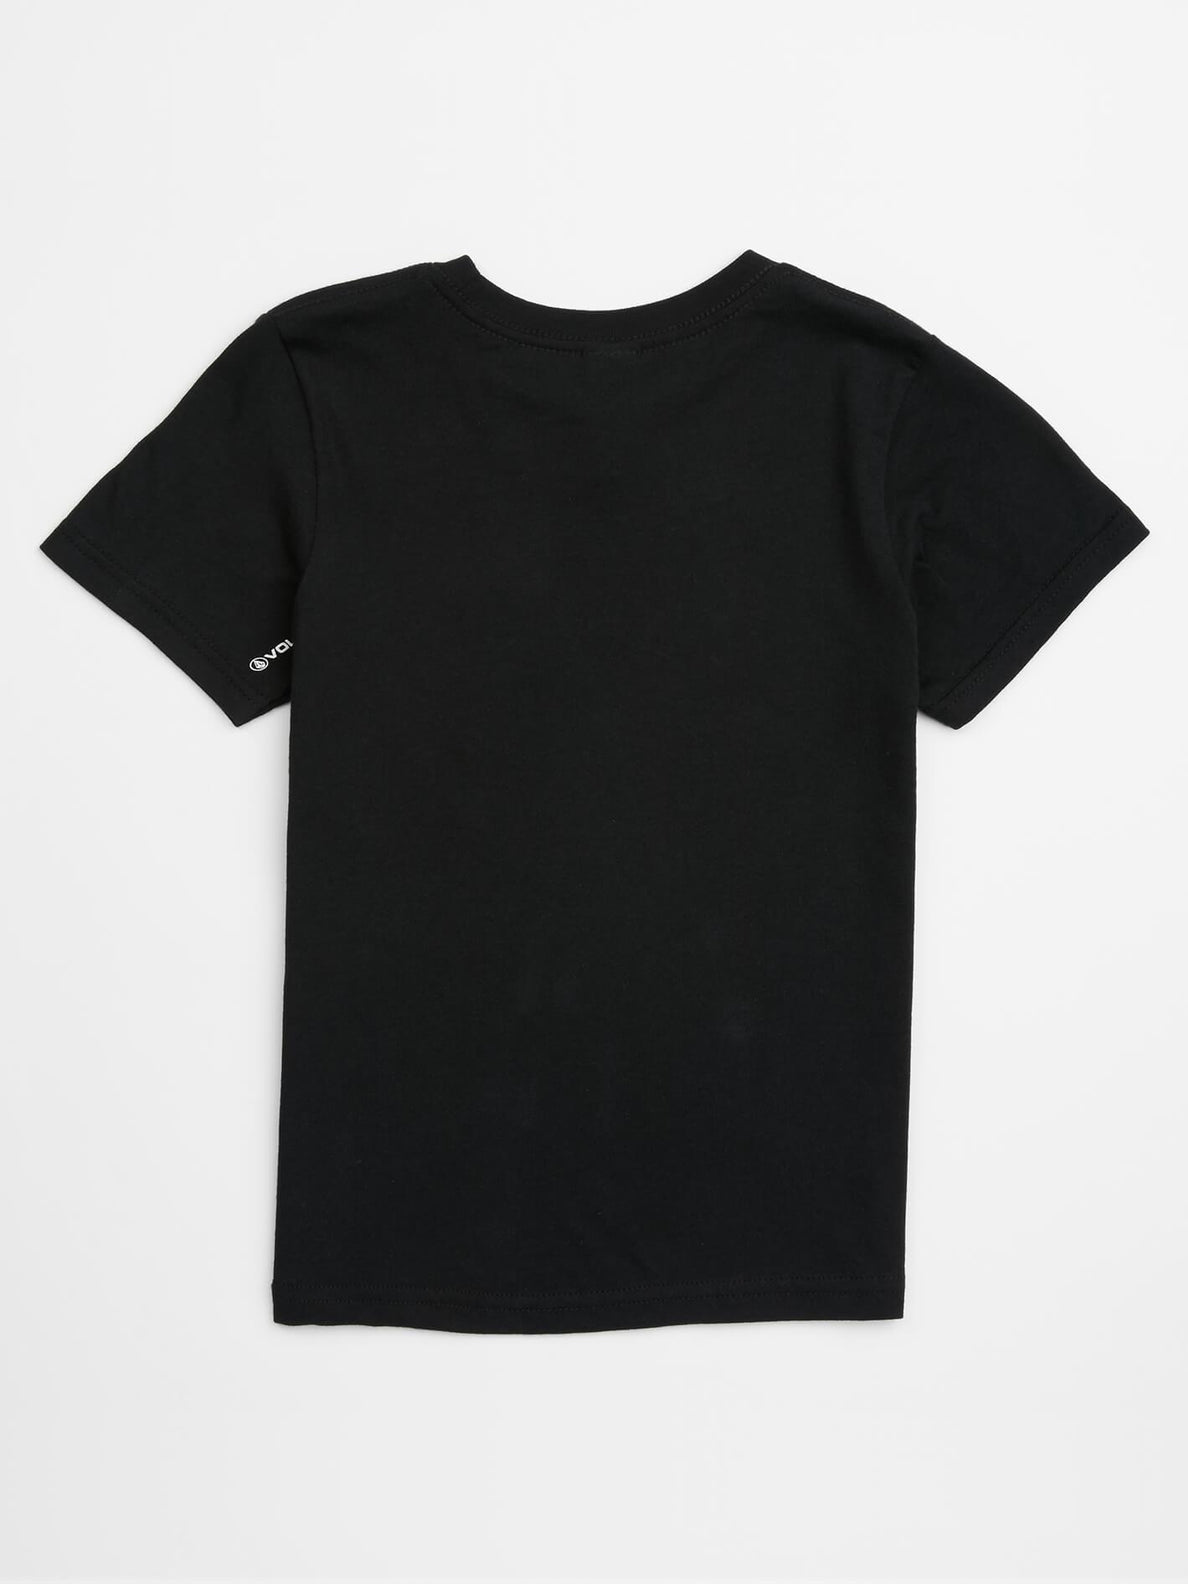 Little Boys Sound Tee In Black, Back View